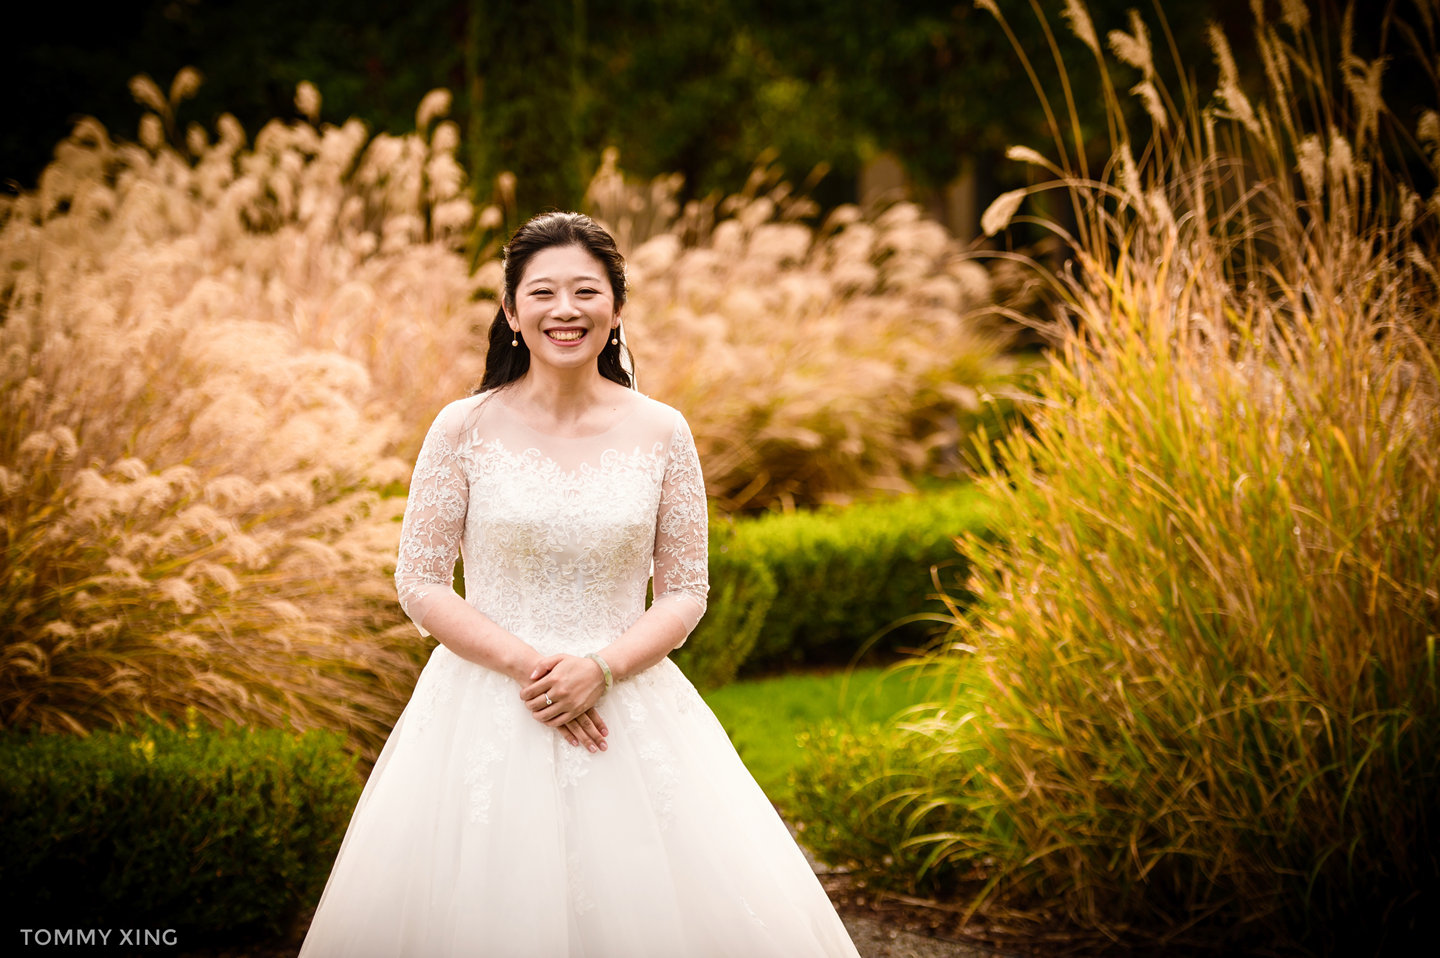 San Francisco Wedding Photography Valley Presbyterian Church WEDDING Tommy Xing Photography 洛杉矶旧金山婚礼婚纱照摄影师051.jpg